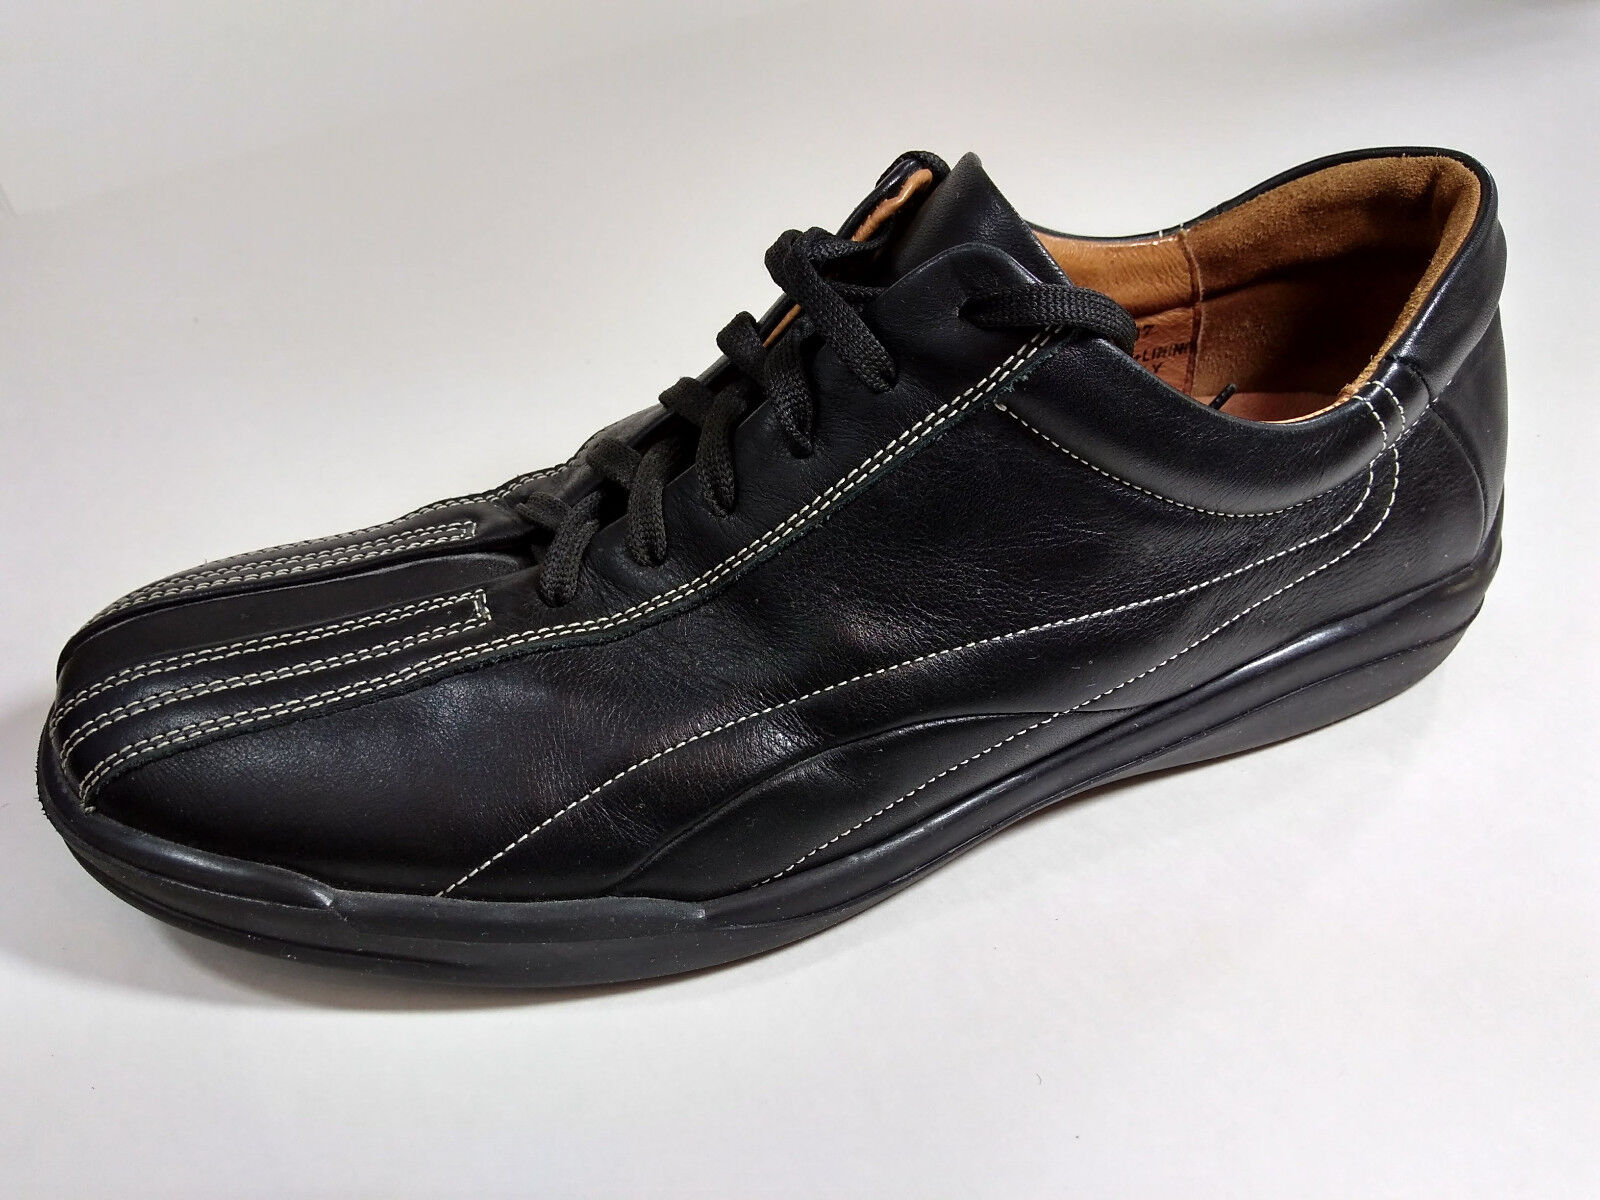 Johnston & Murphy 8.5 M Black Leather Casual Oxford Sneakers Mens Italy 20-6707